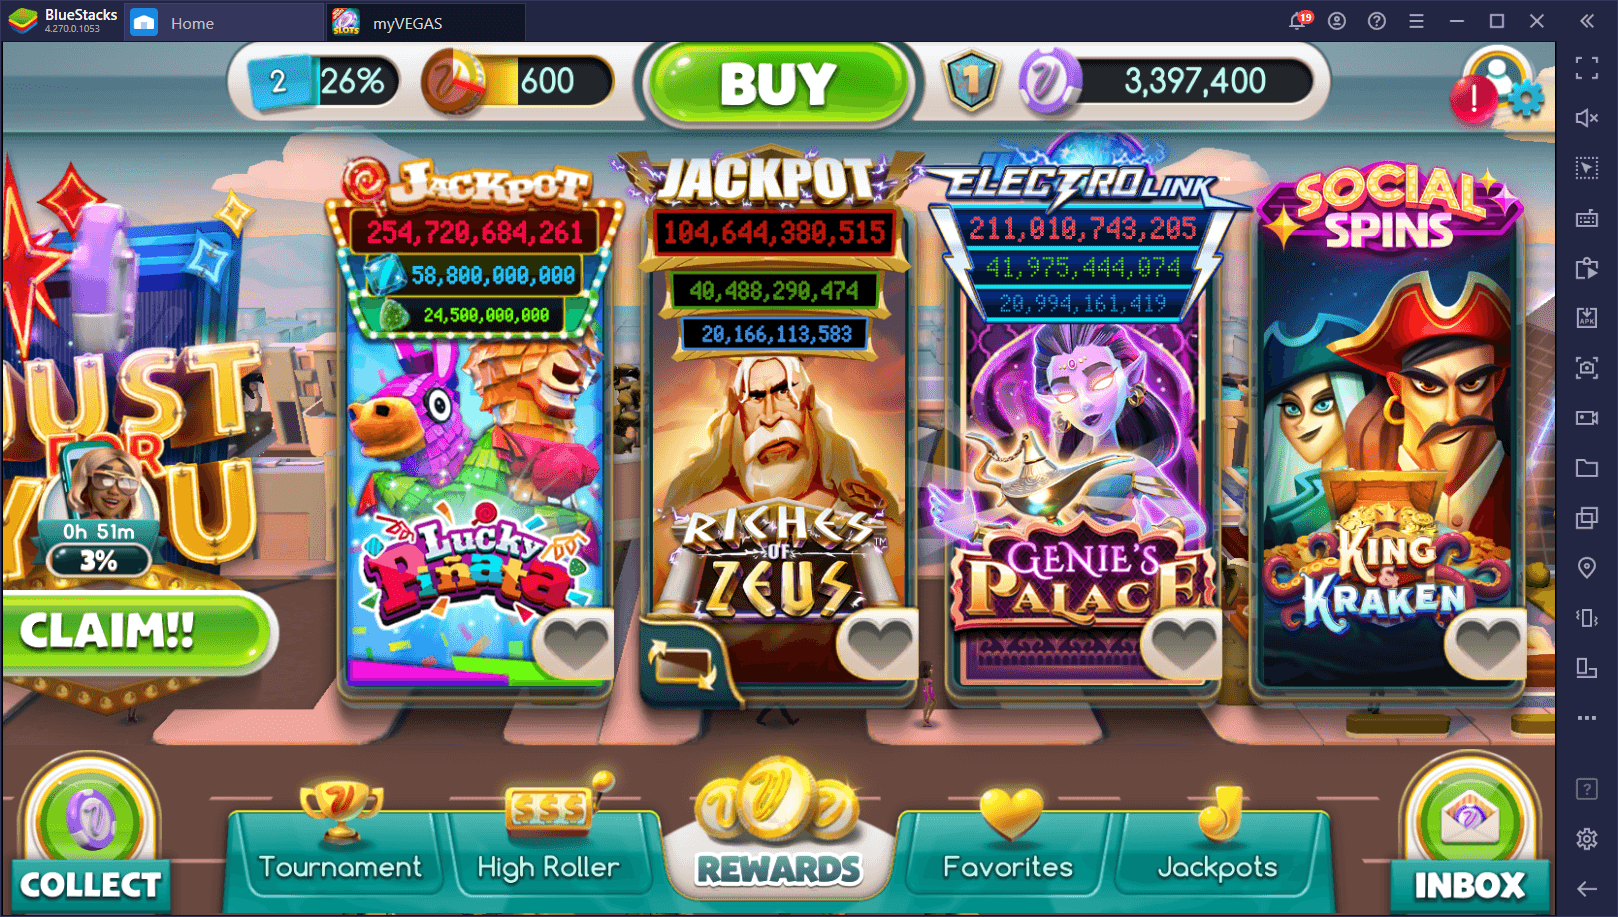 How to Play the myVEGAS Slots on PC with BlueStacks